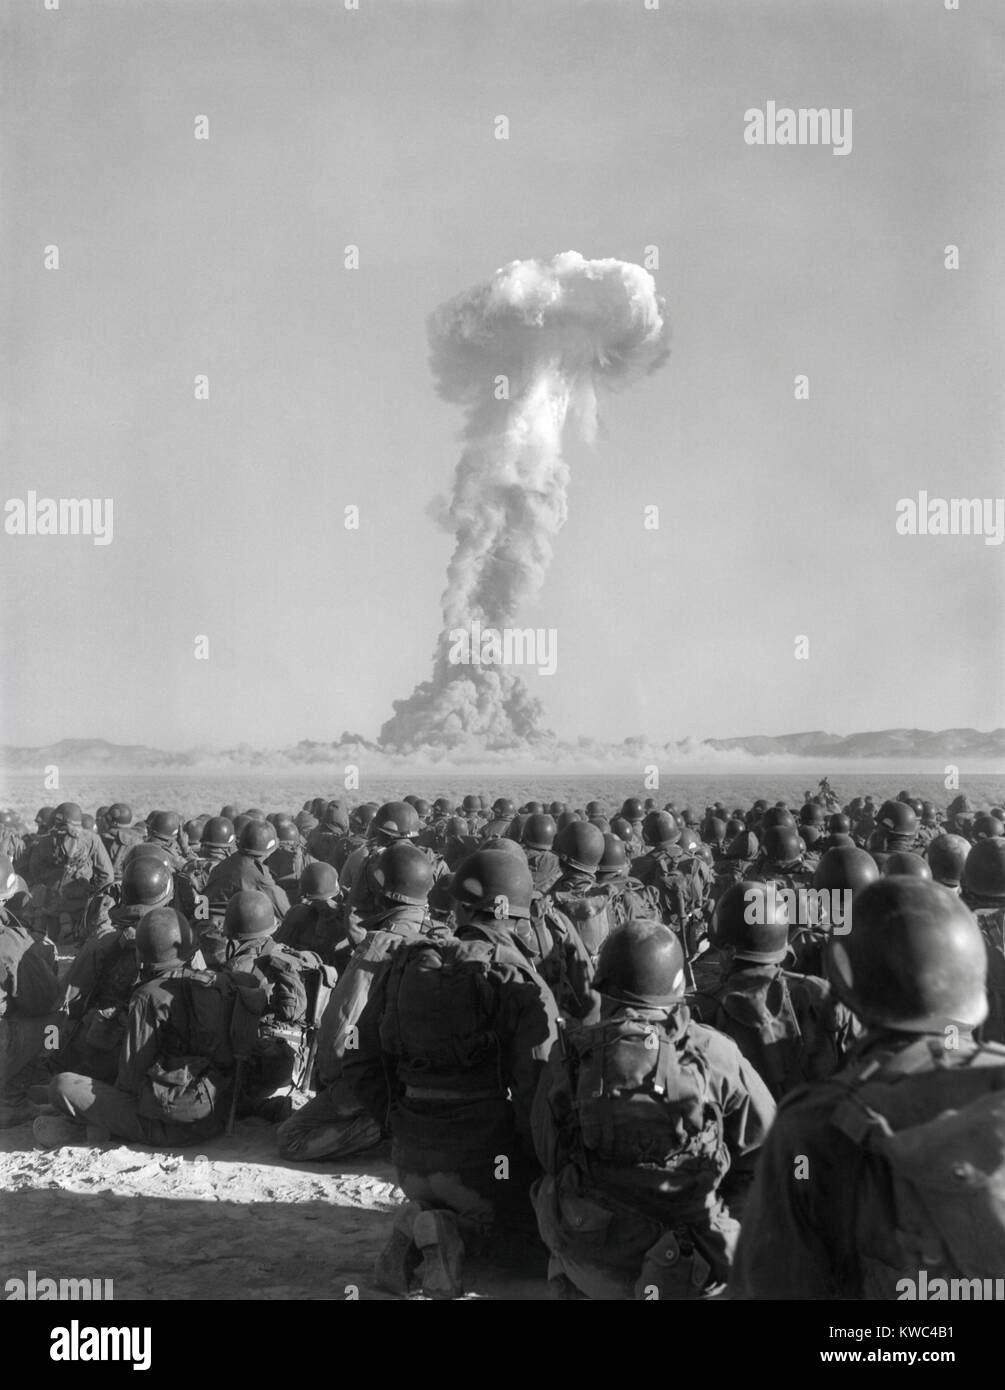 Exercise Desert Rock, Nov. 1, 1951. Men of the U.S. Army 11th Airborne Division, watch a plume of radio-active smoke - Stock Image